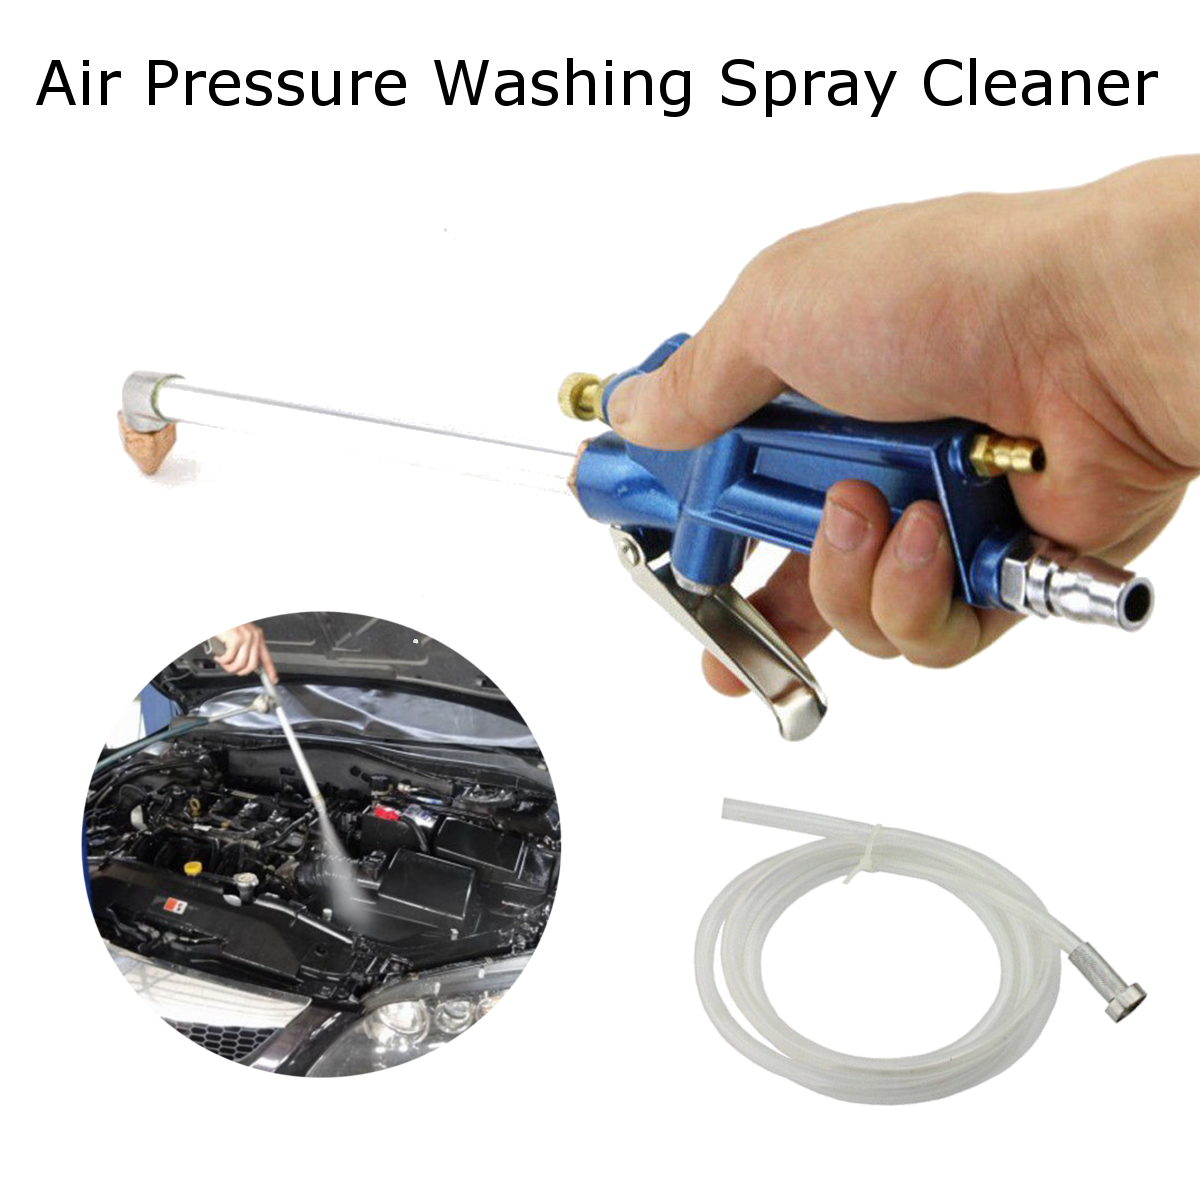 home car truck air pressure washer spray cleaner and blow washing tool kit